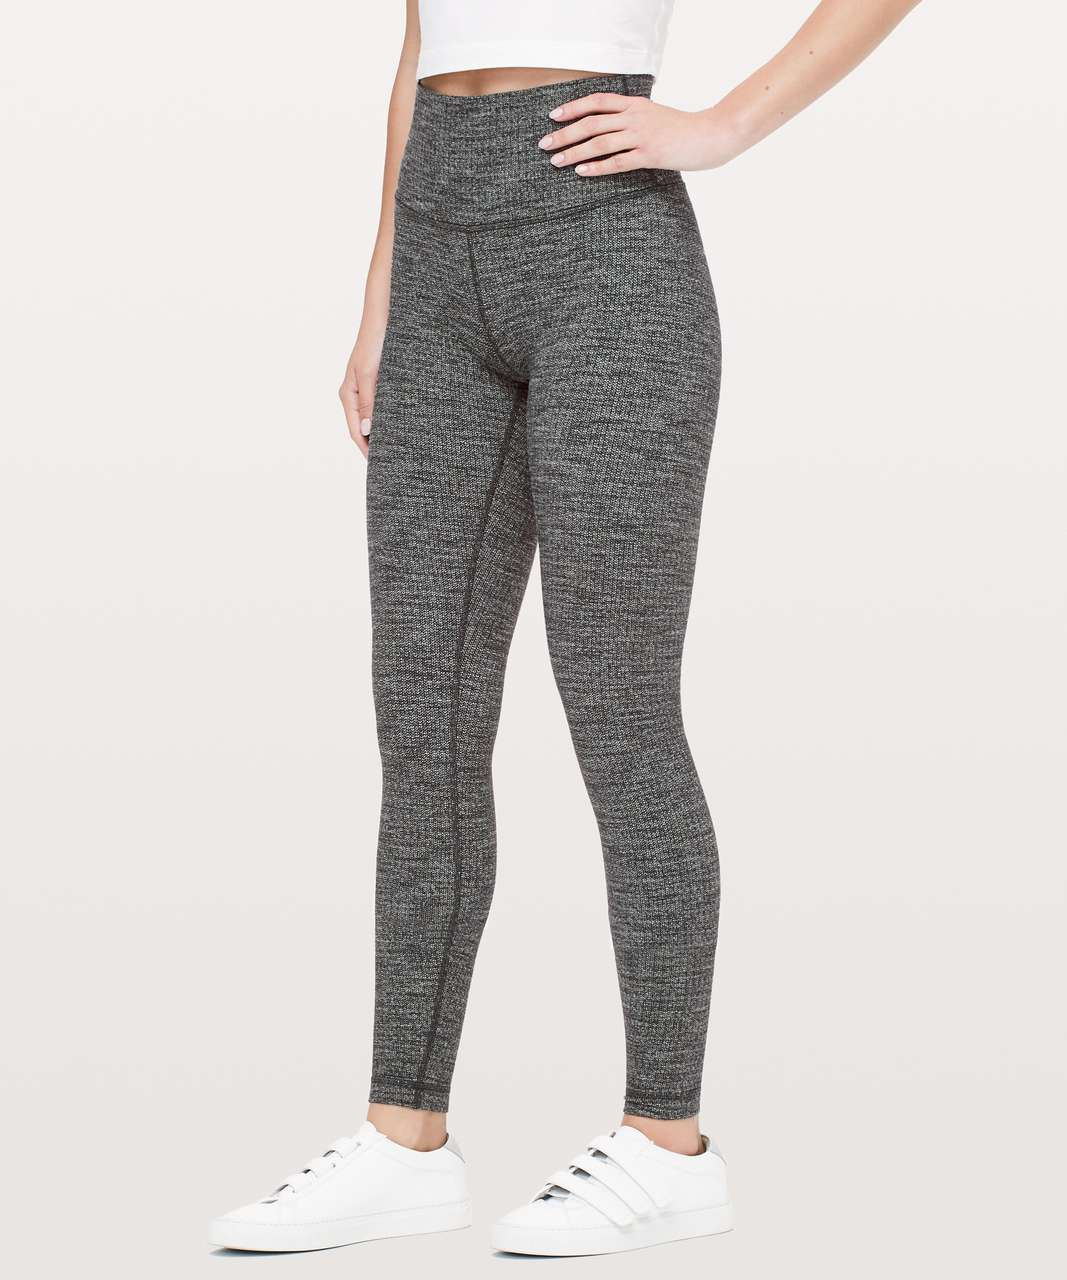 "Lululemon Wunder Under High-Rise Tight *28"" - Luon Variegated Knit Black Heathered Black"